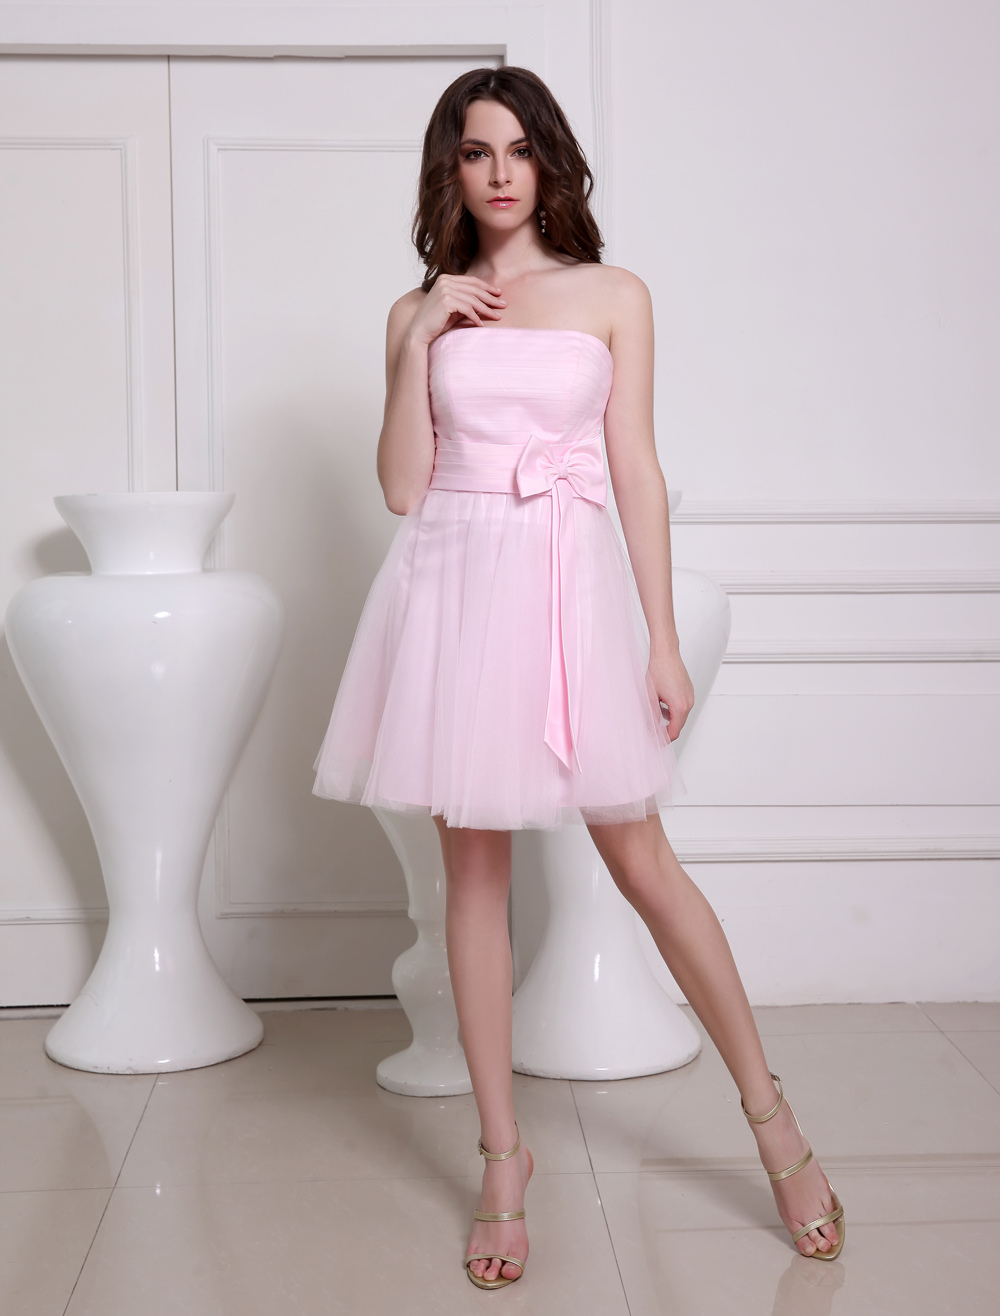 Lovely Pink Strapless A-line Bow Tulle Elegant Cocktail Dress (Wedding Bridesmaid Dresses) photo